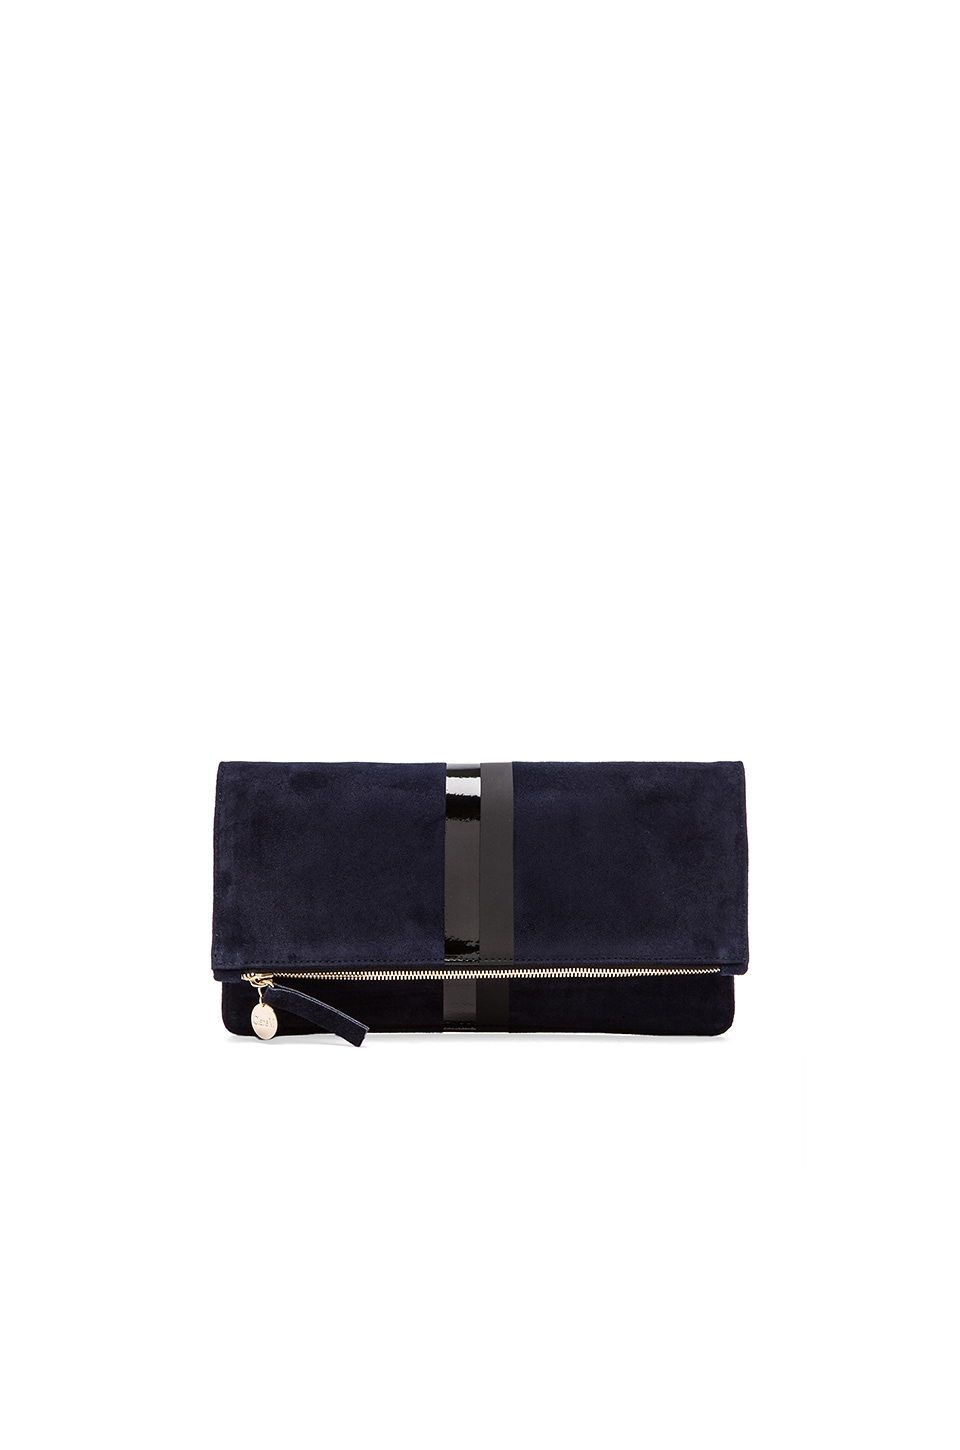 Clare V. Foldover Clutch in Navy Suede